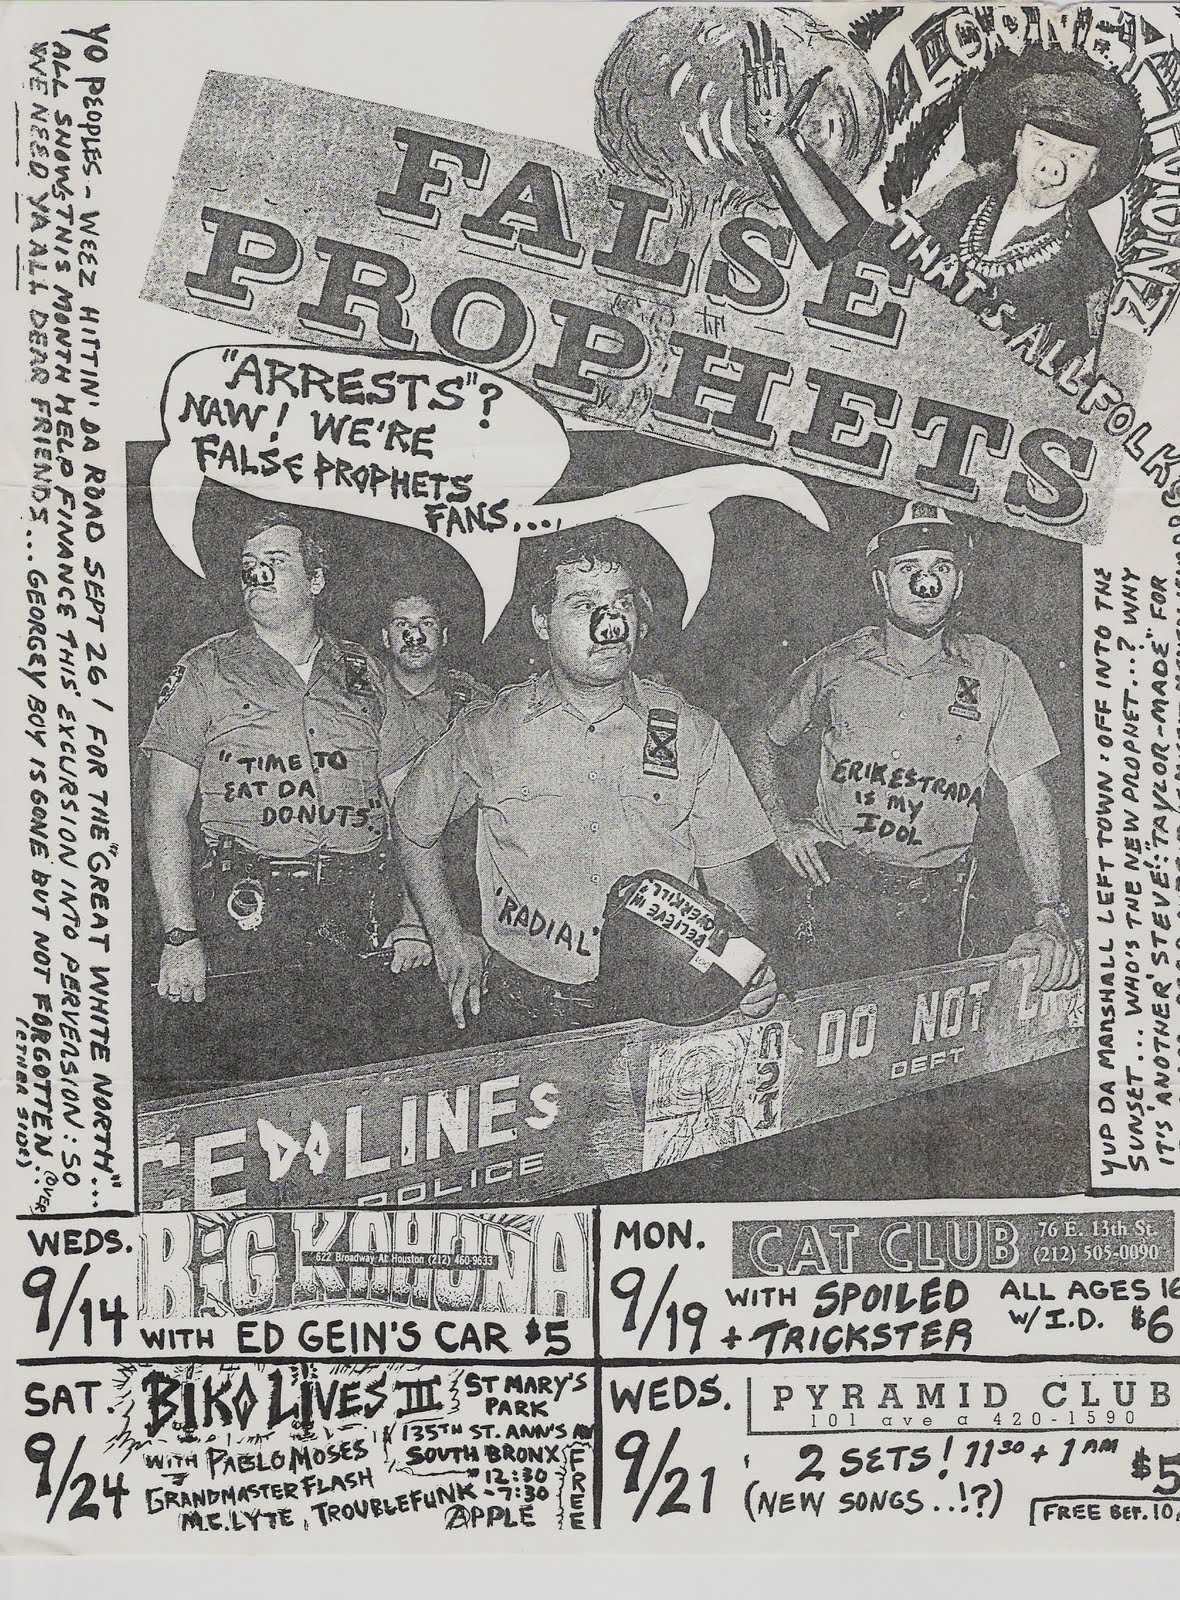 FFanzeen: Rock'n'Roll Attitude With Integrity: Club Flyers and Invites from 1970s and 1980s: Part 3